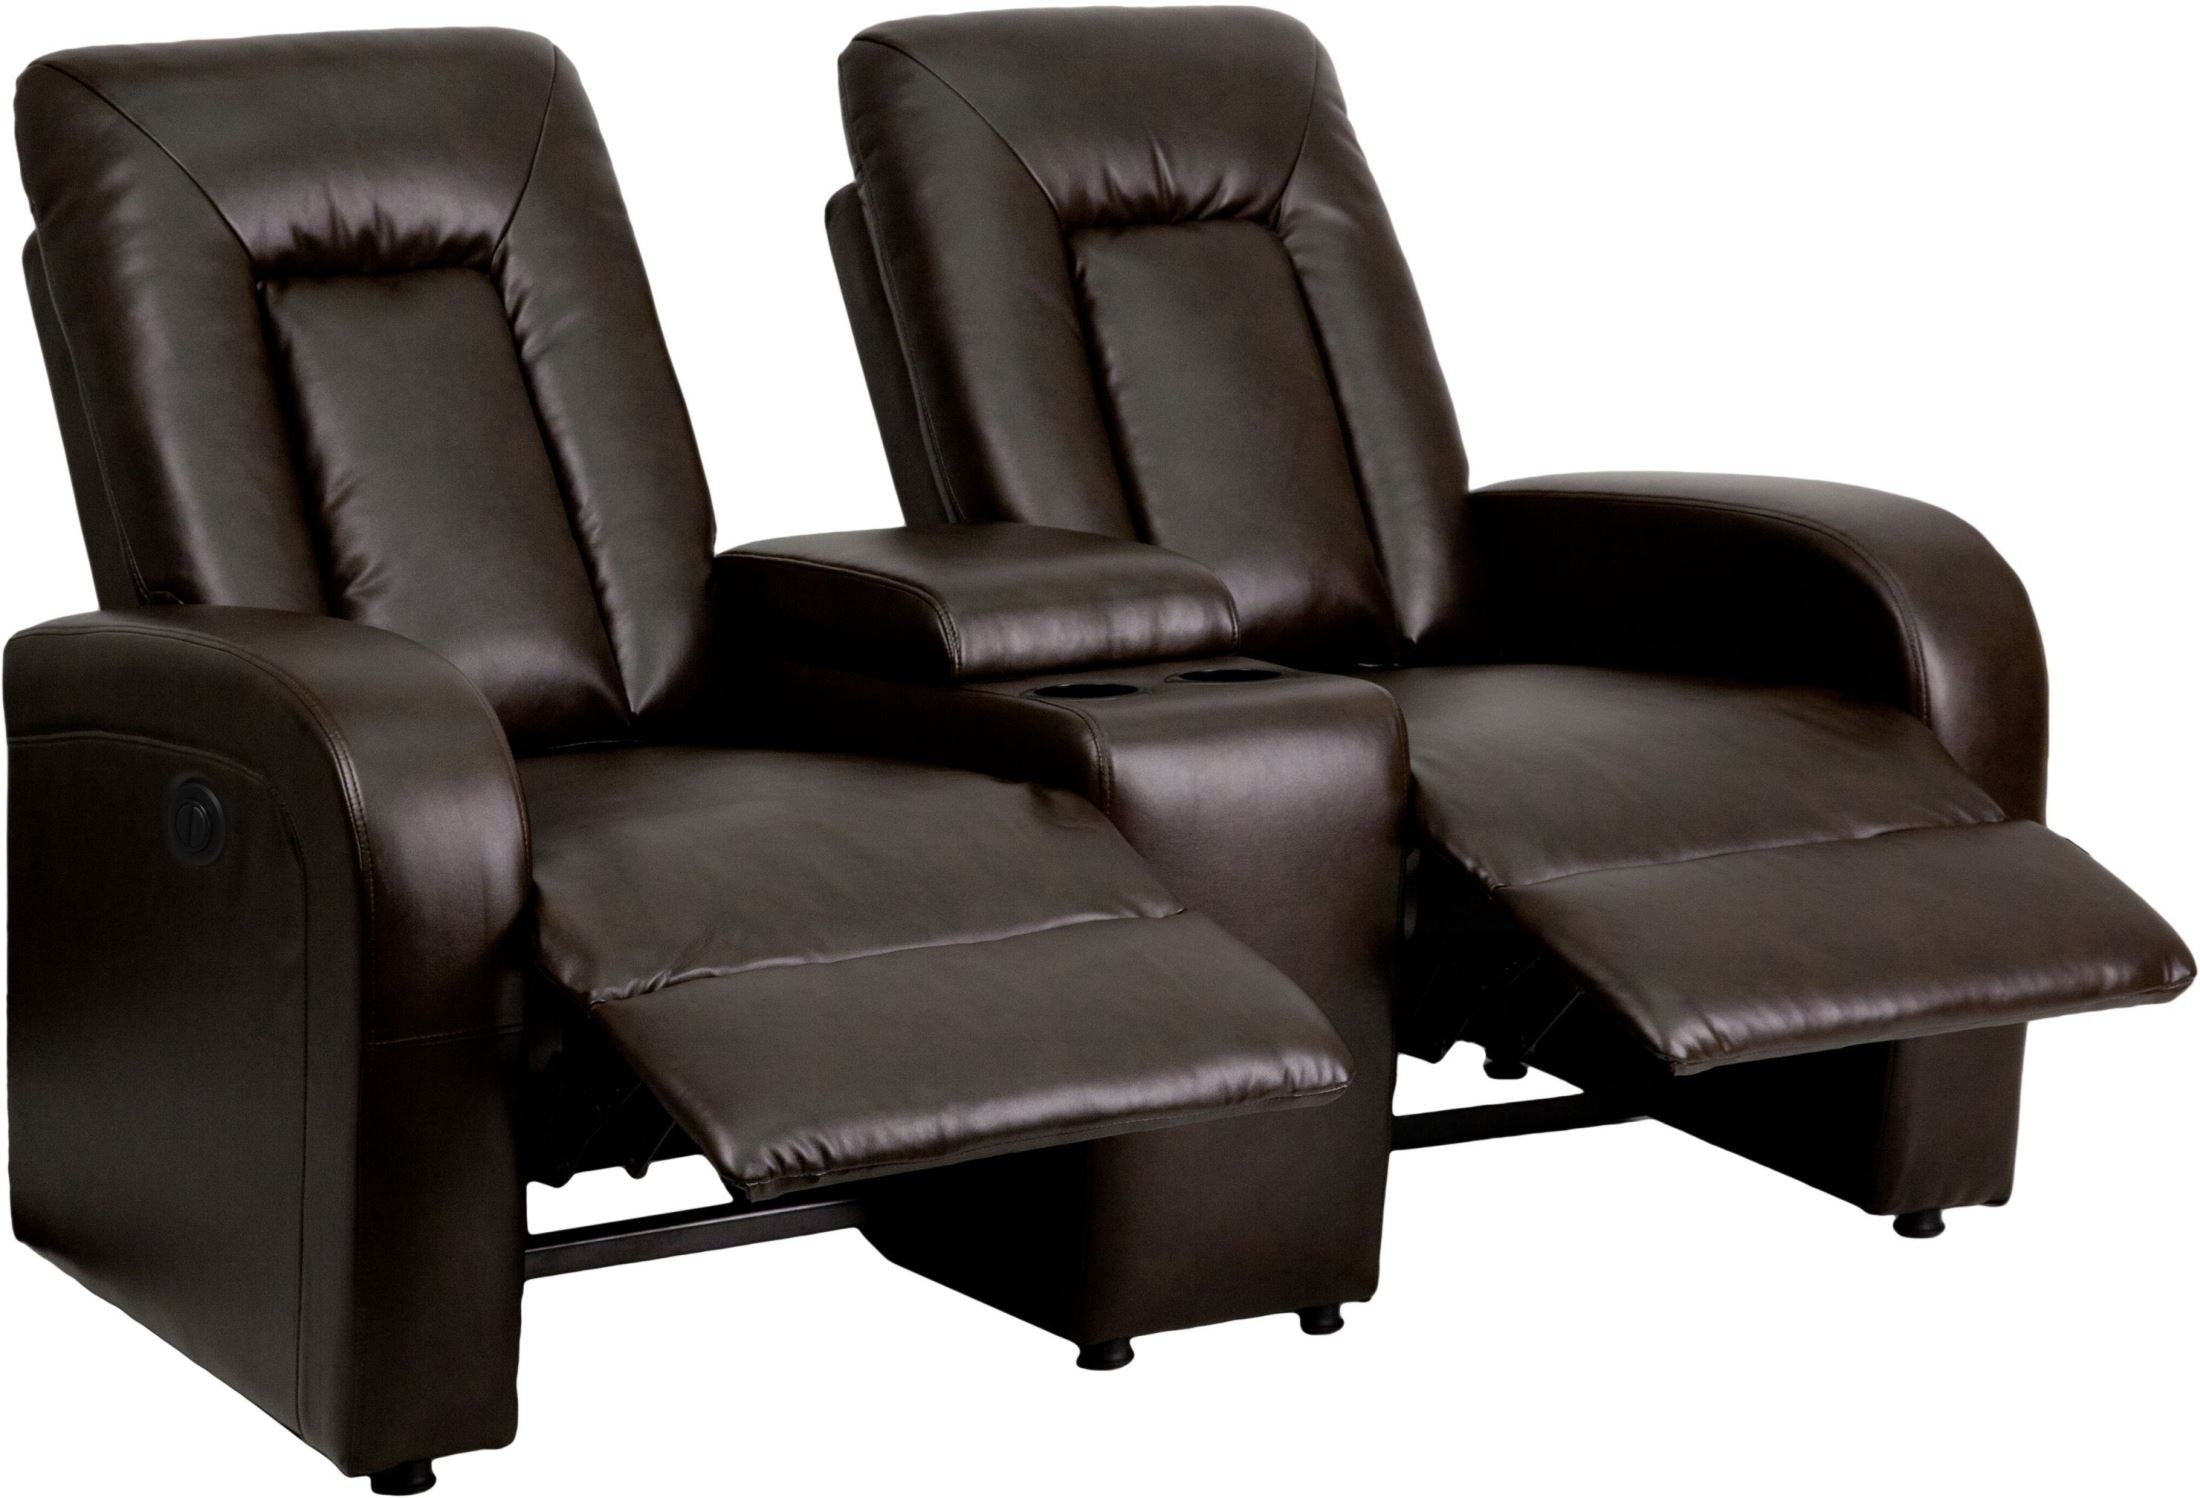 recliner chairs movie theater accent living room eclipse series automated brown leather 2 seat reclining